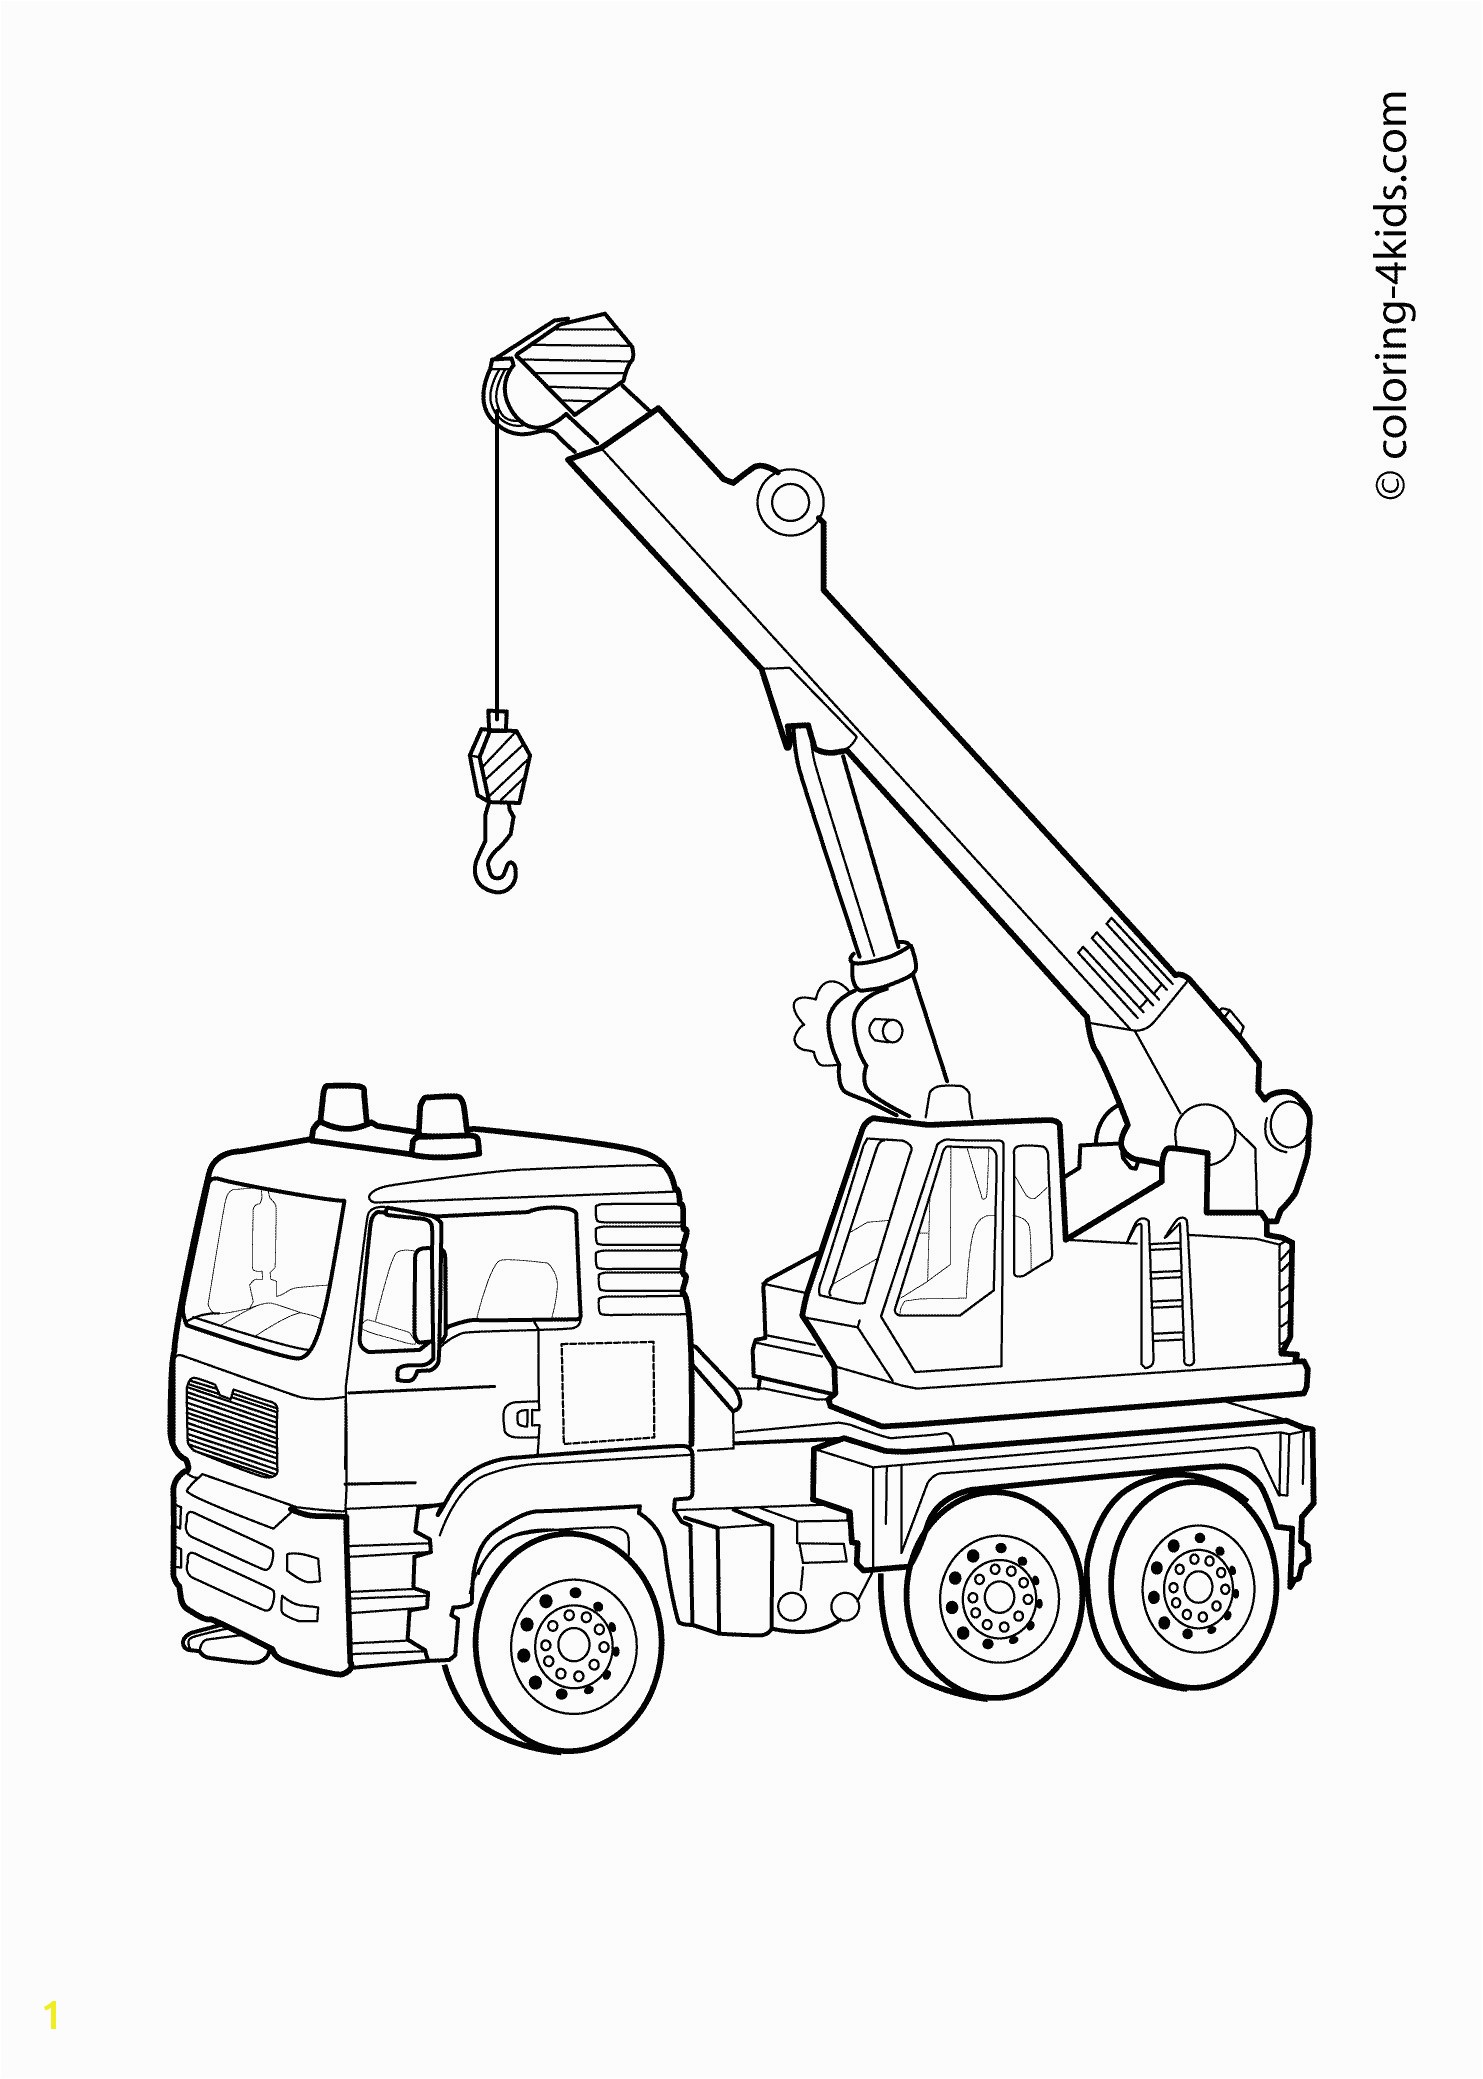 Ford F150 Coloring Page ford F150 Coloring Page Elegant ford Truck Coloring Pages